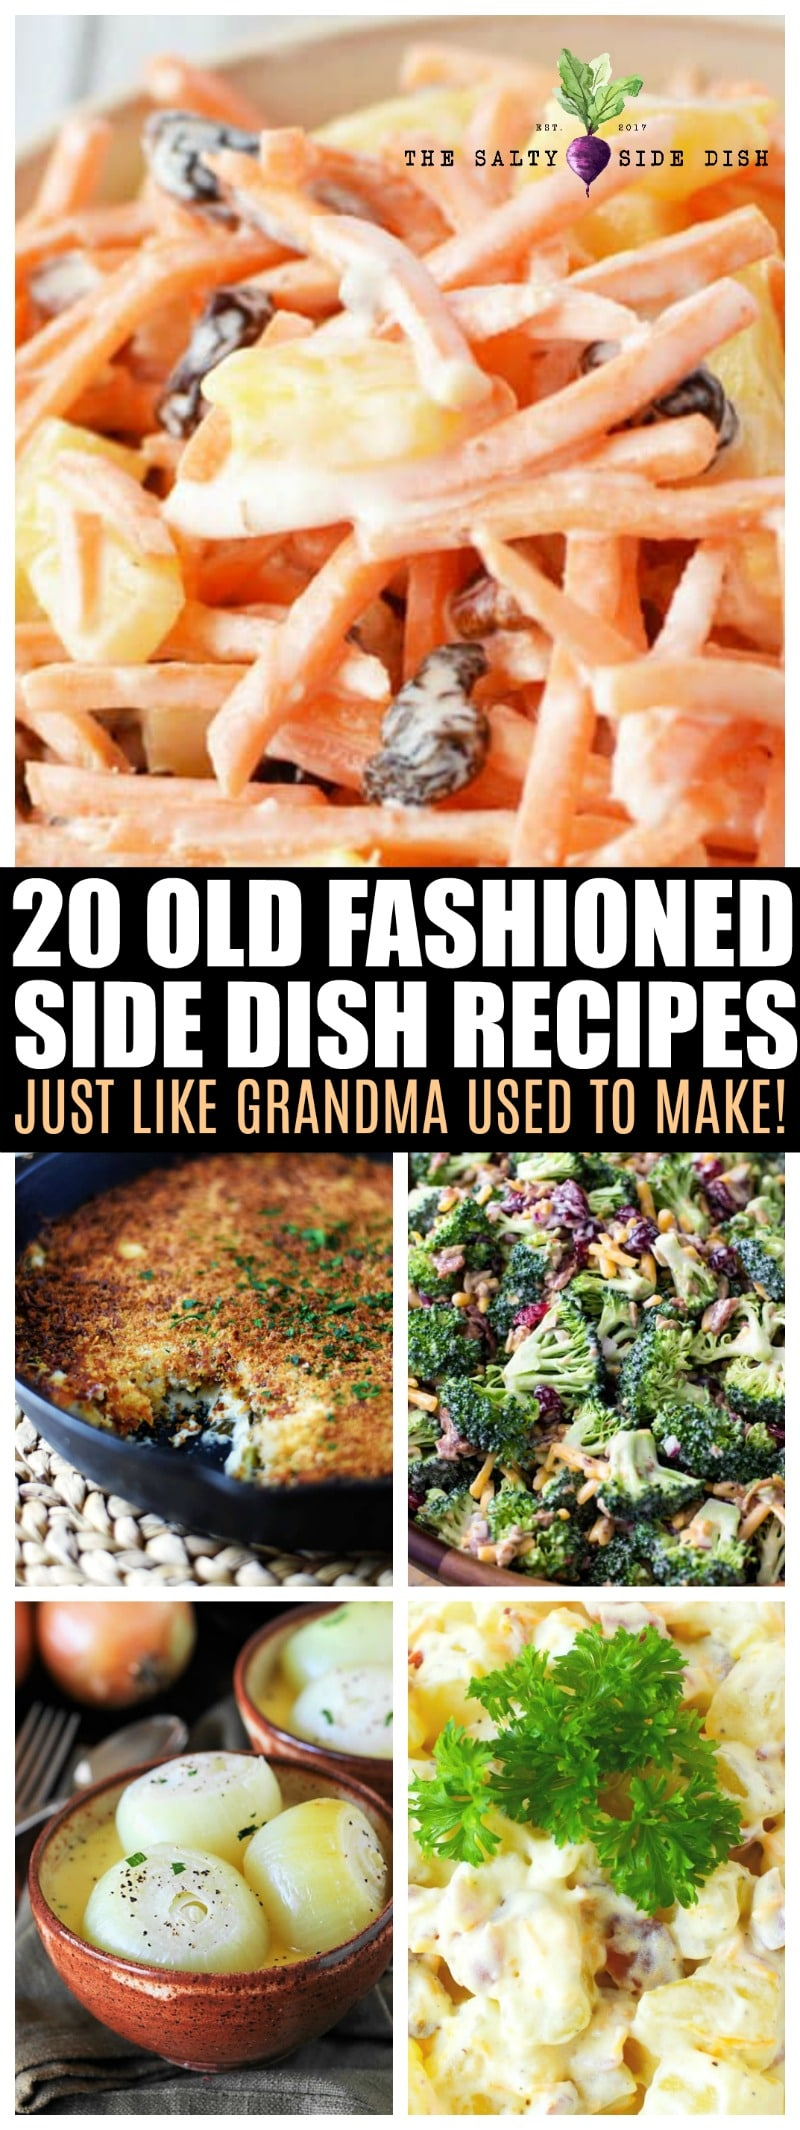 old fashioned side dish recipes